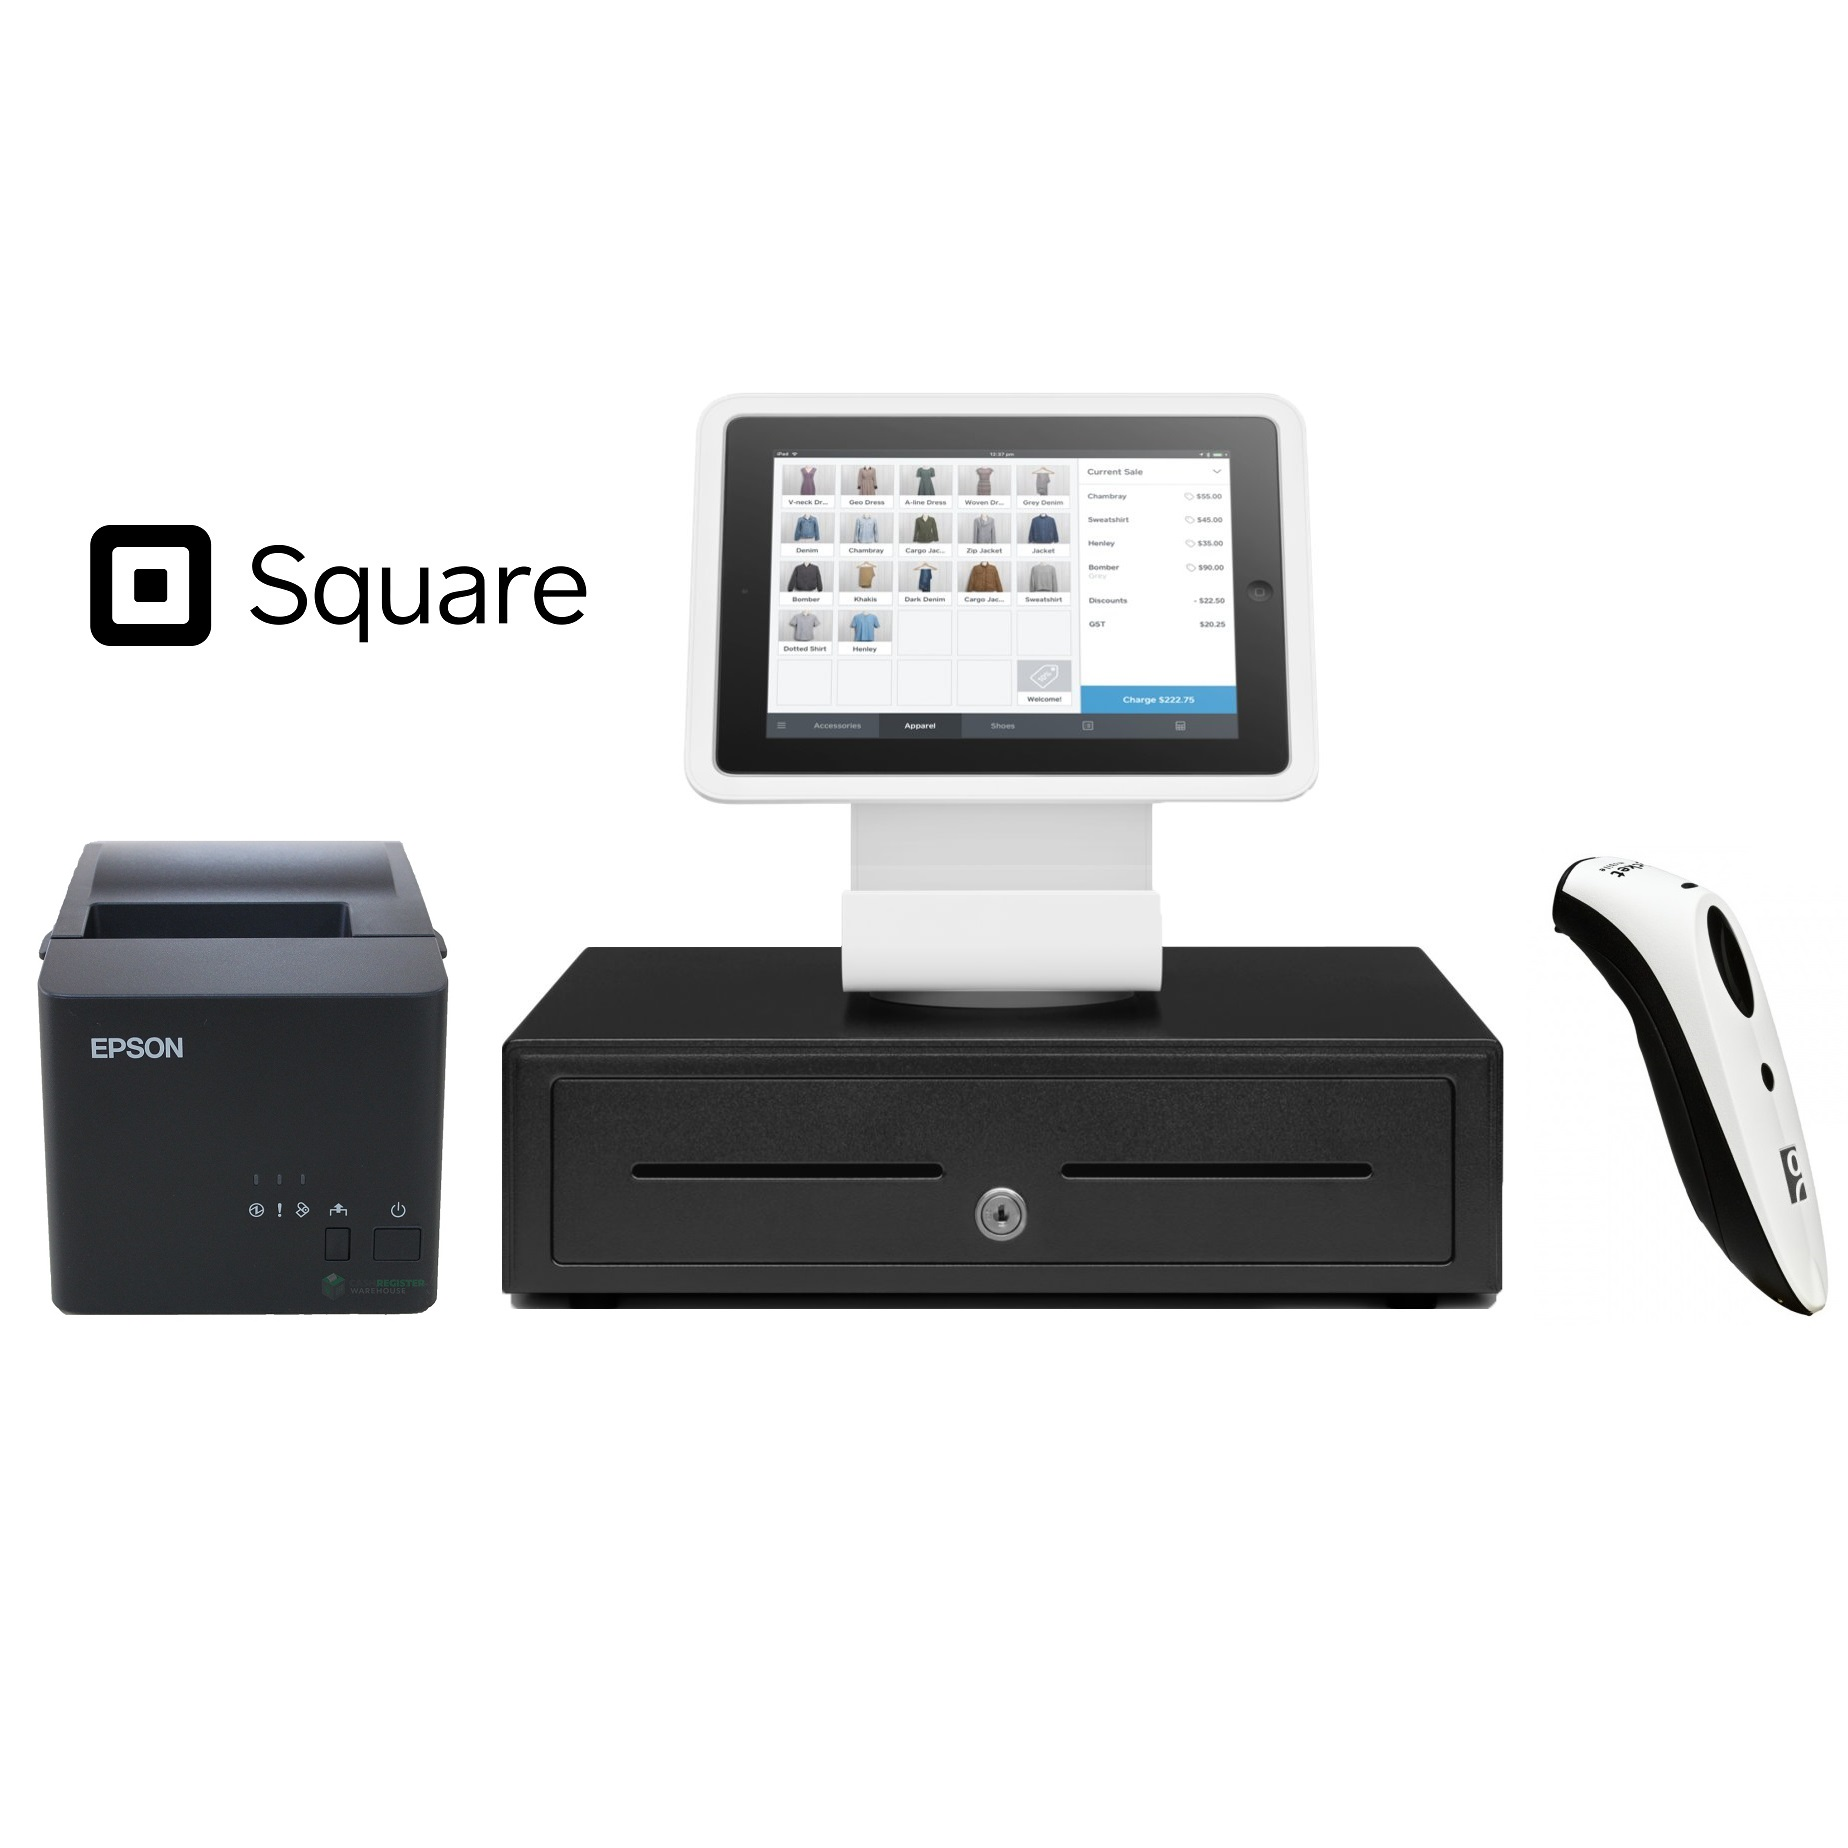 Square Stand POS Hardware Bundle #7